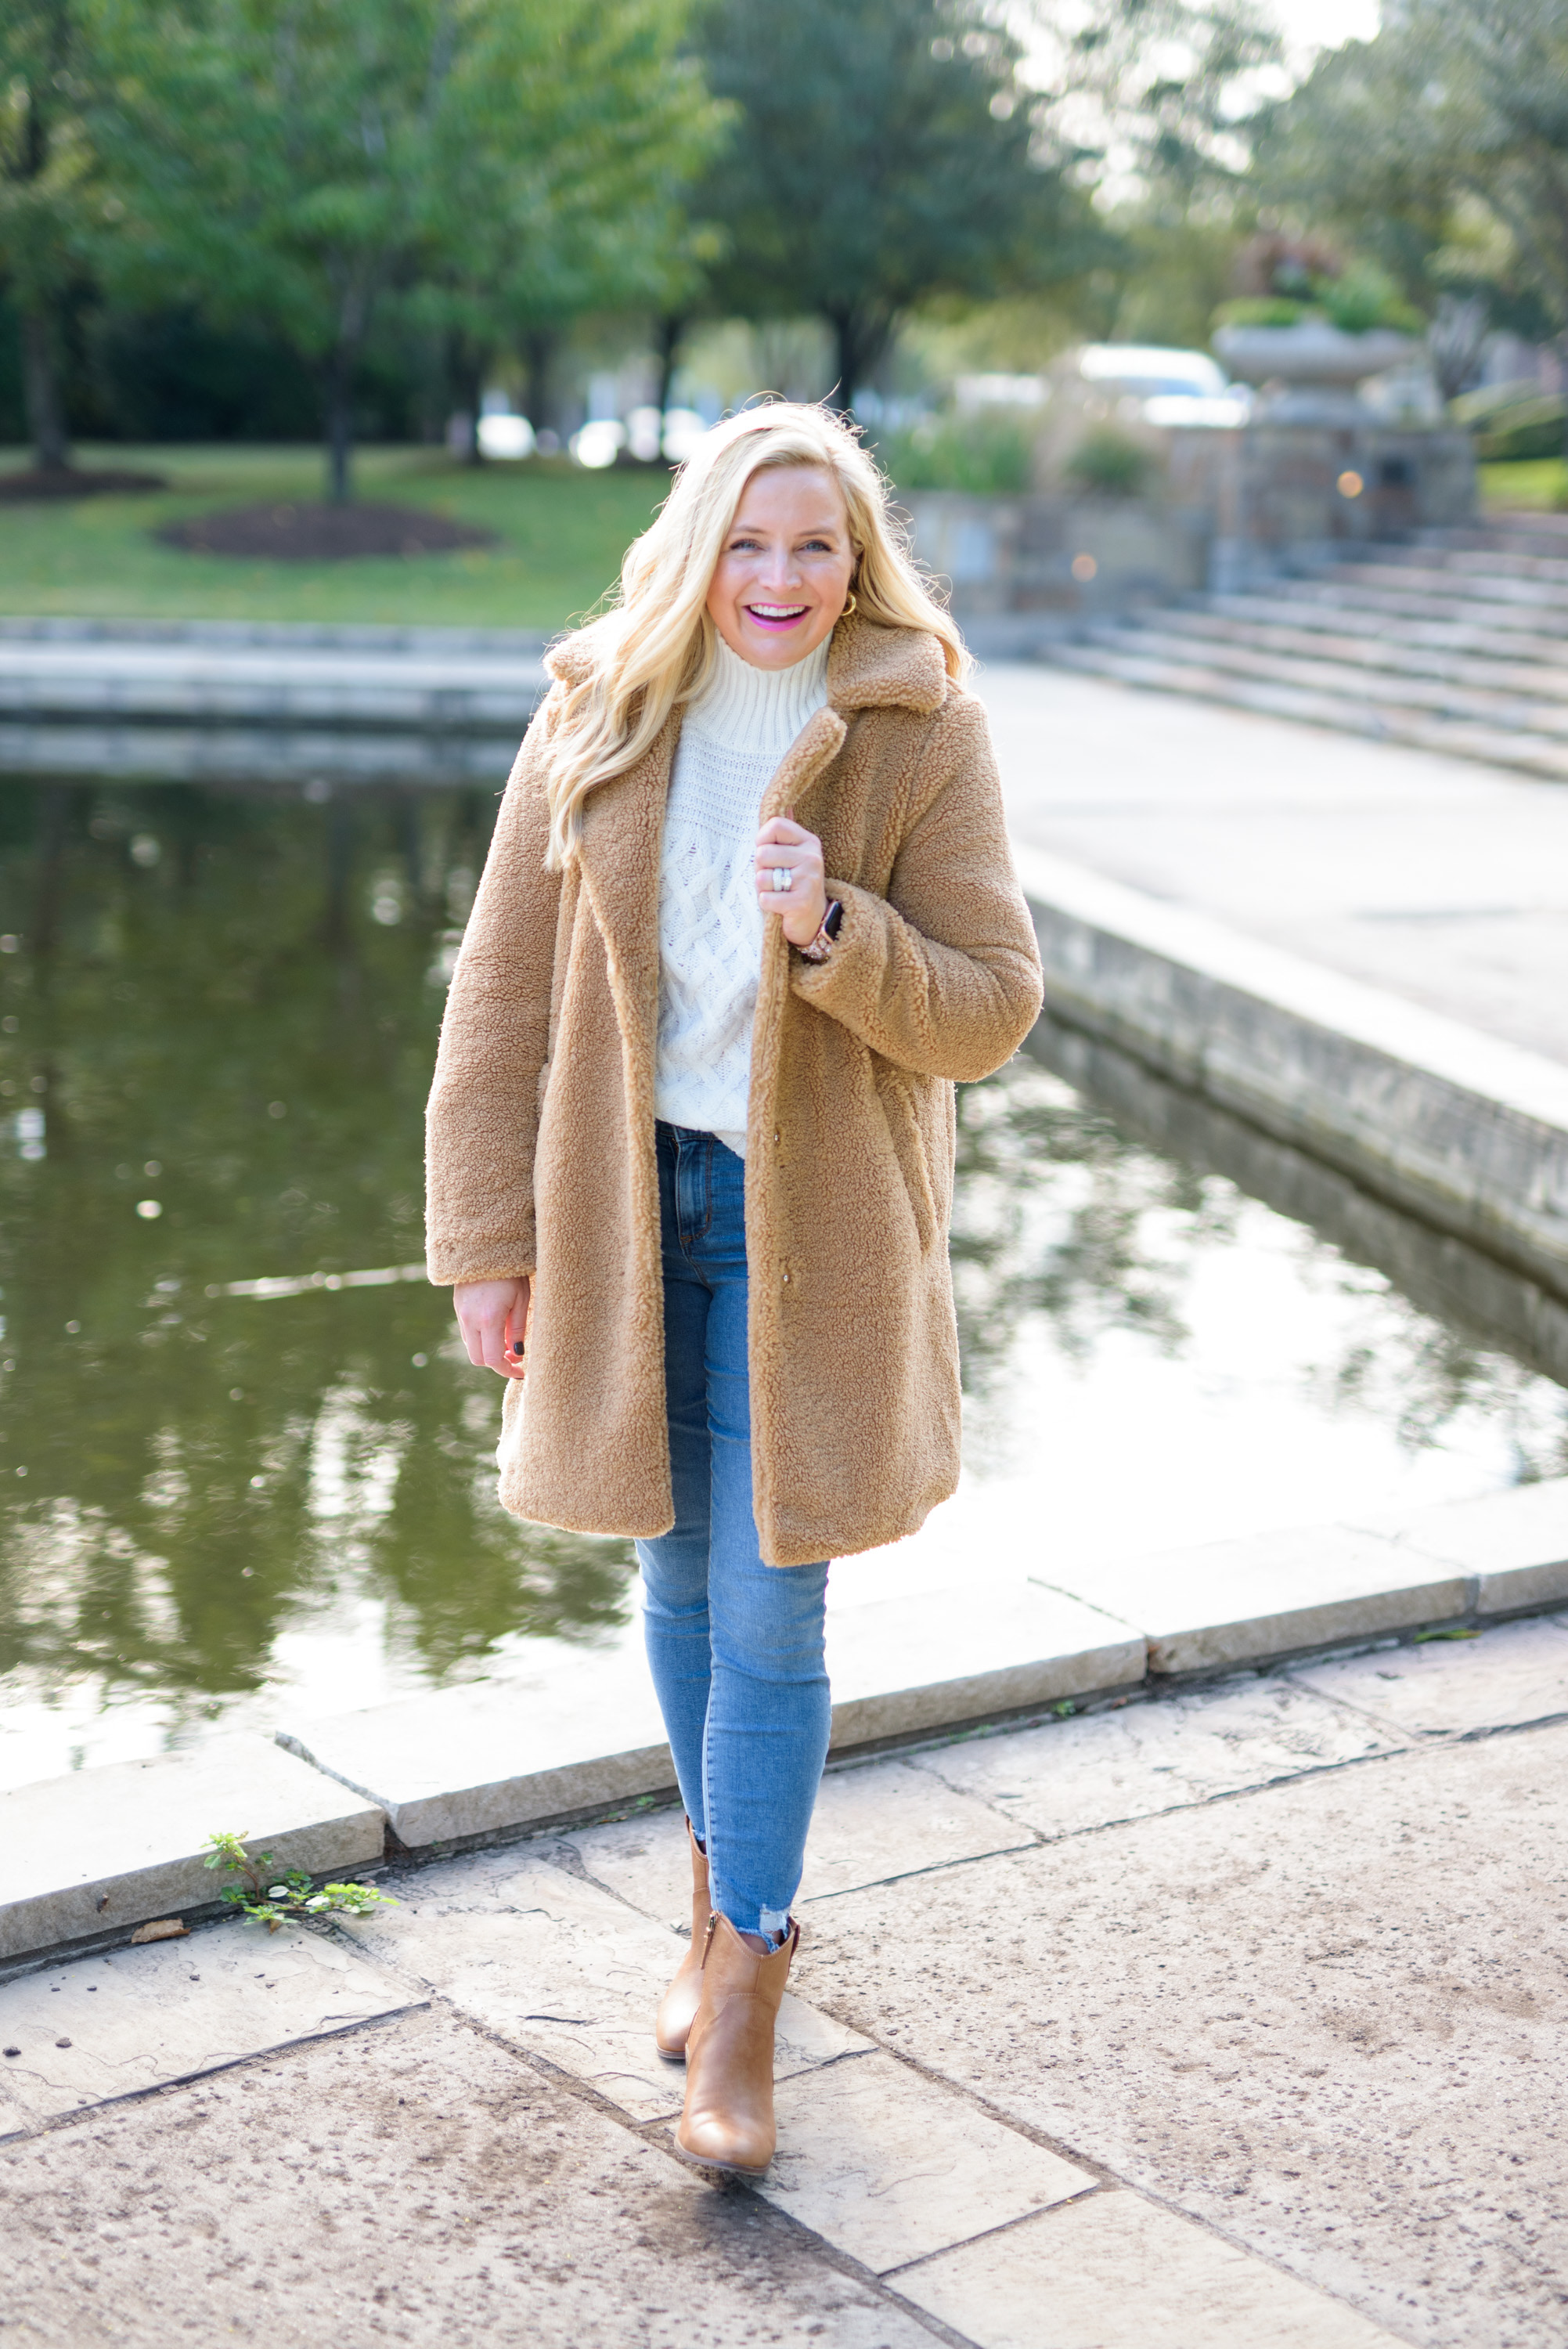 Cute Fall Outfits by popular Houston fashion blog, Fancy Ashley: image of a woman wearing a wubby fleece jacket, cream sweater, jeans, tan ankle boots and gold hoop earrings.